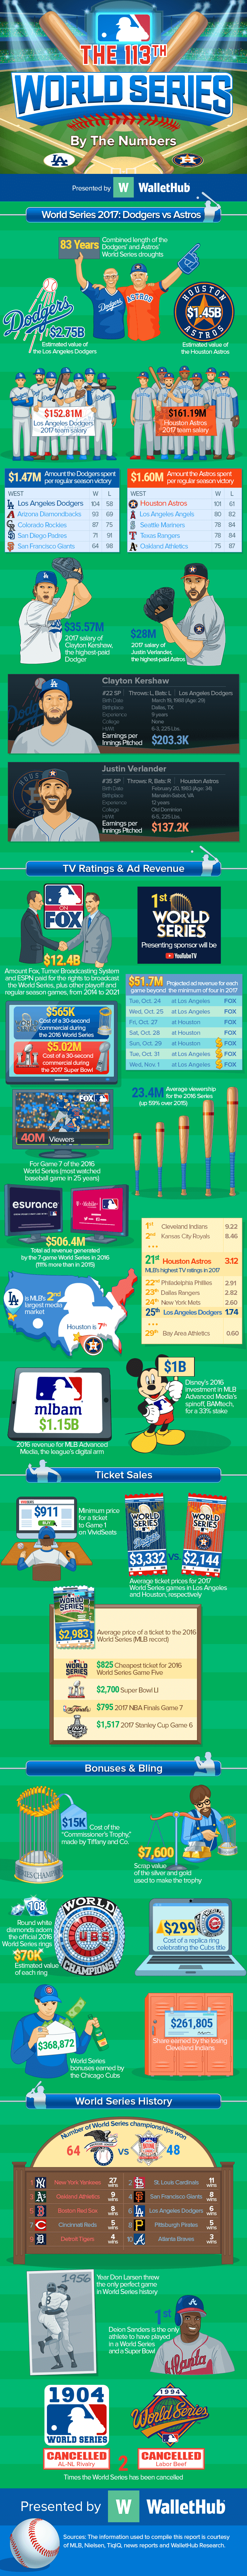 The-113th-World-Series-By-The-Numbers-v6